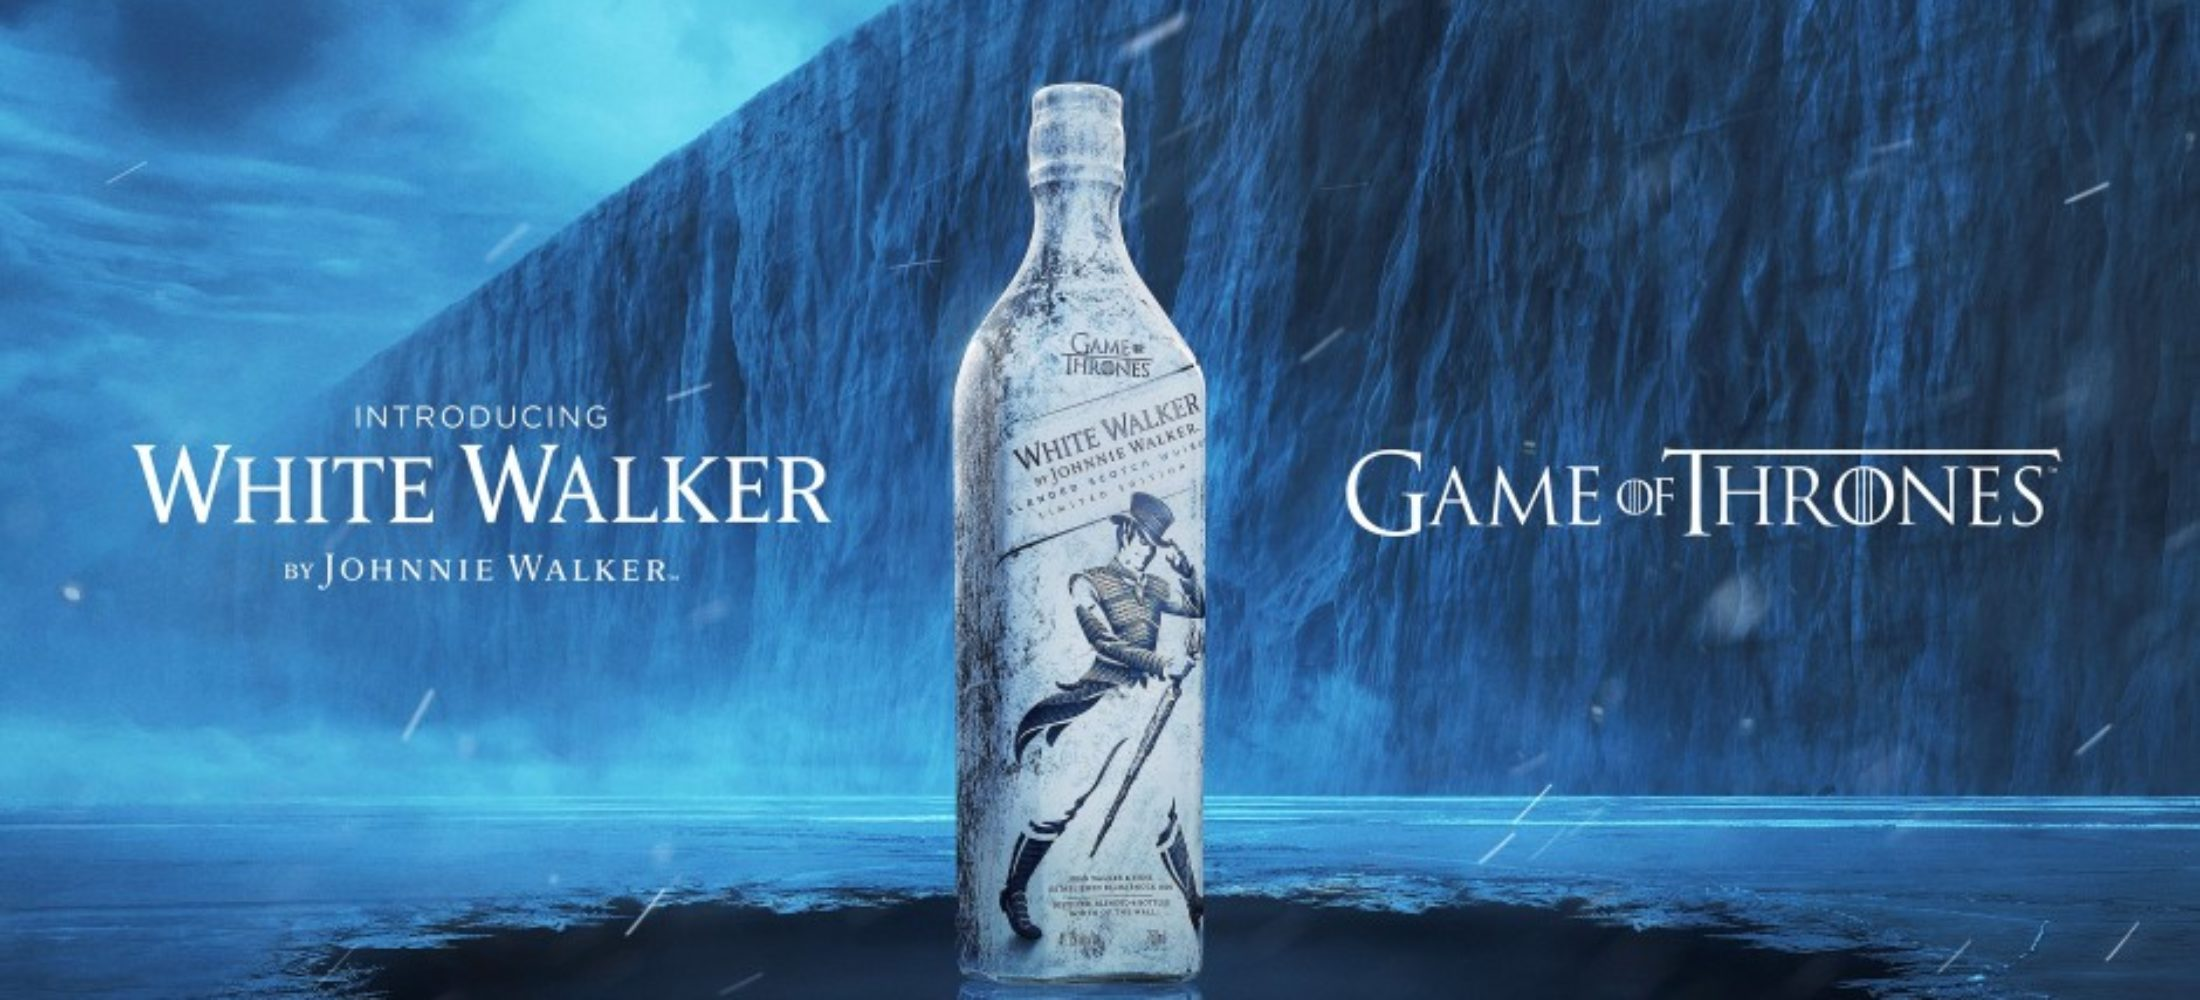 Winter is here in Calgary! - White Walker by Johnnie Walker